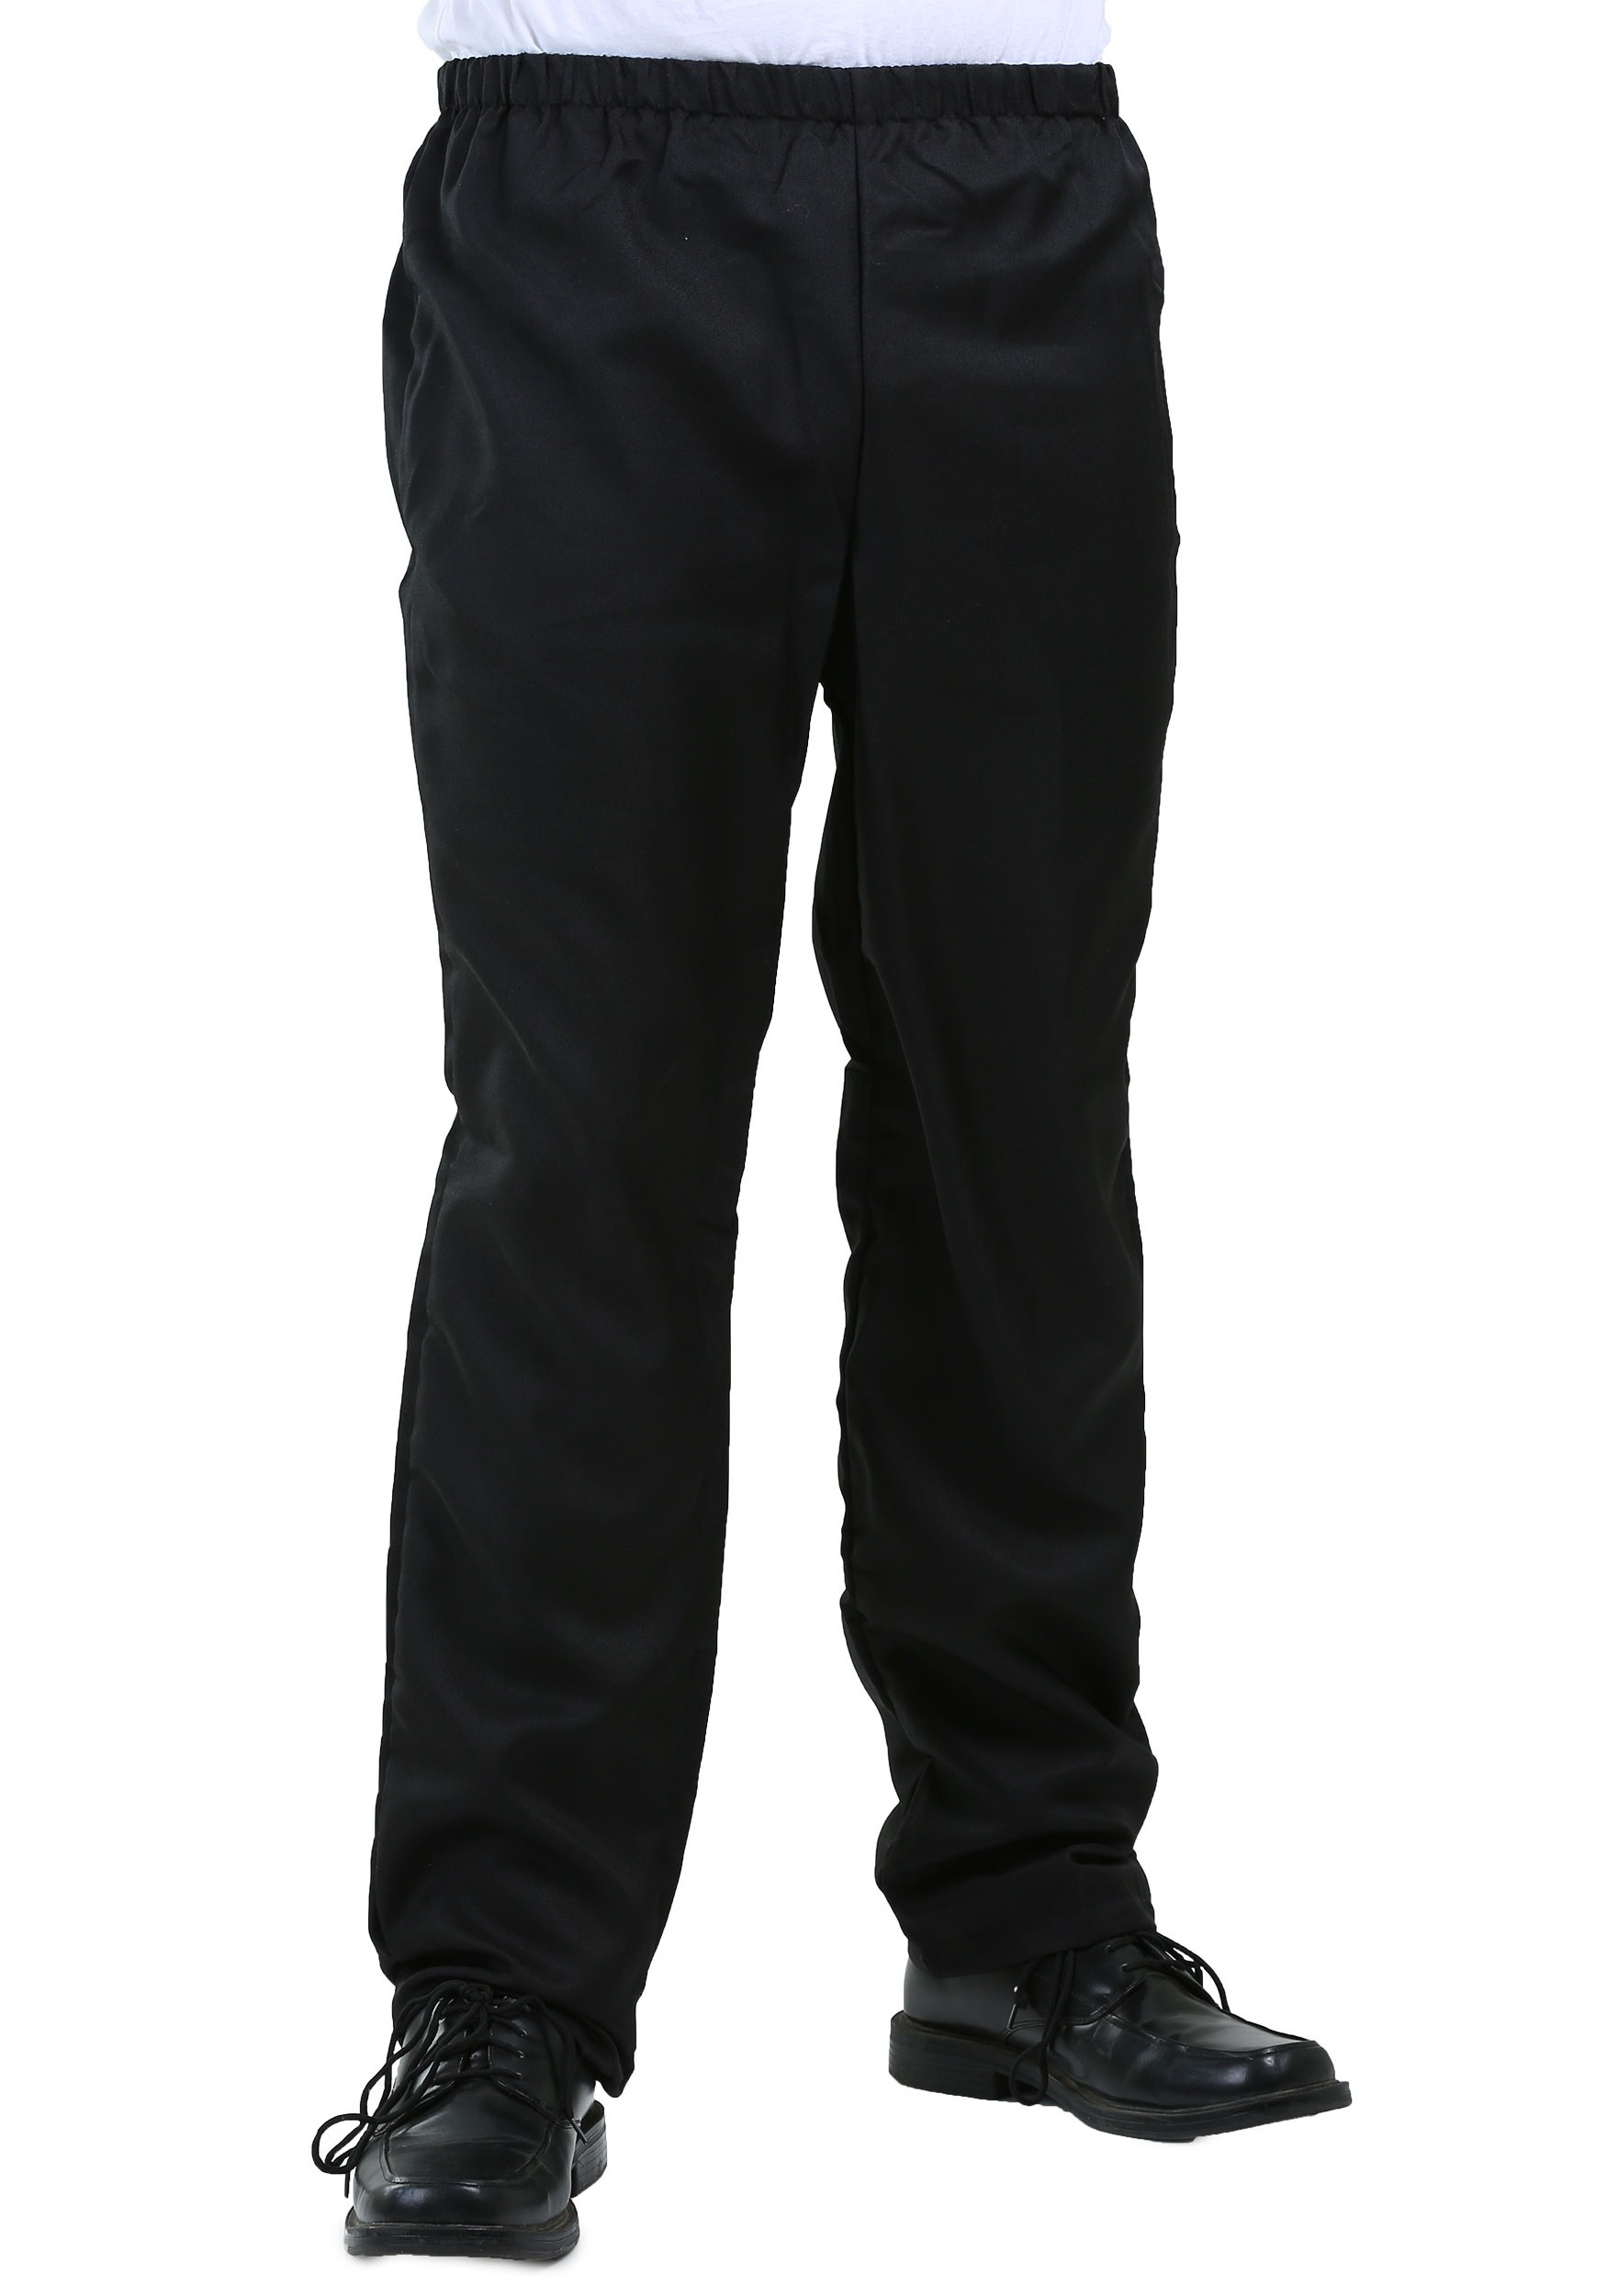 Free shipping and returns on Boys' Black Pants at obmenvisitami.tk